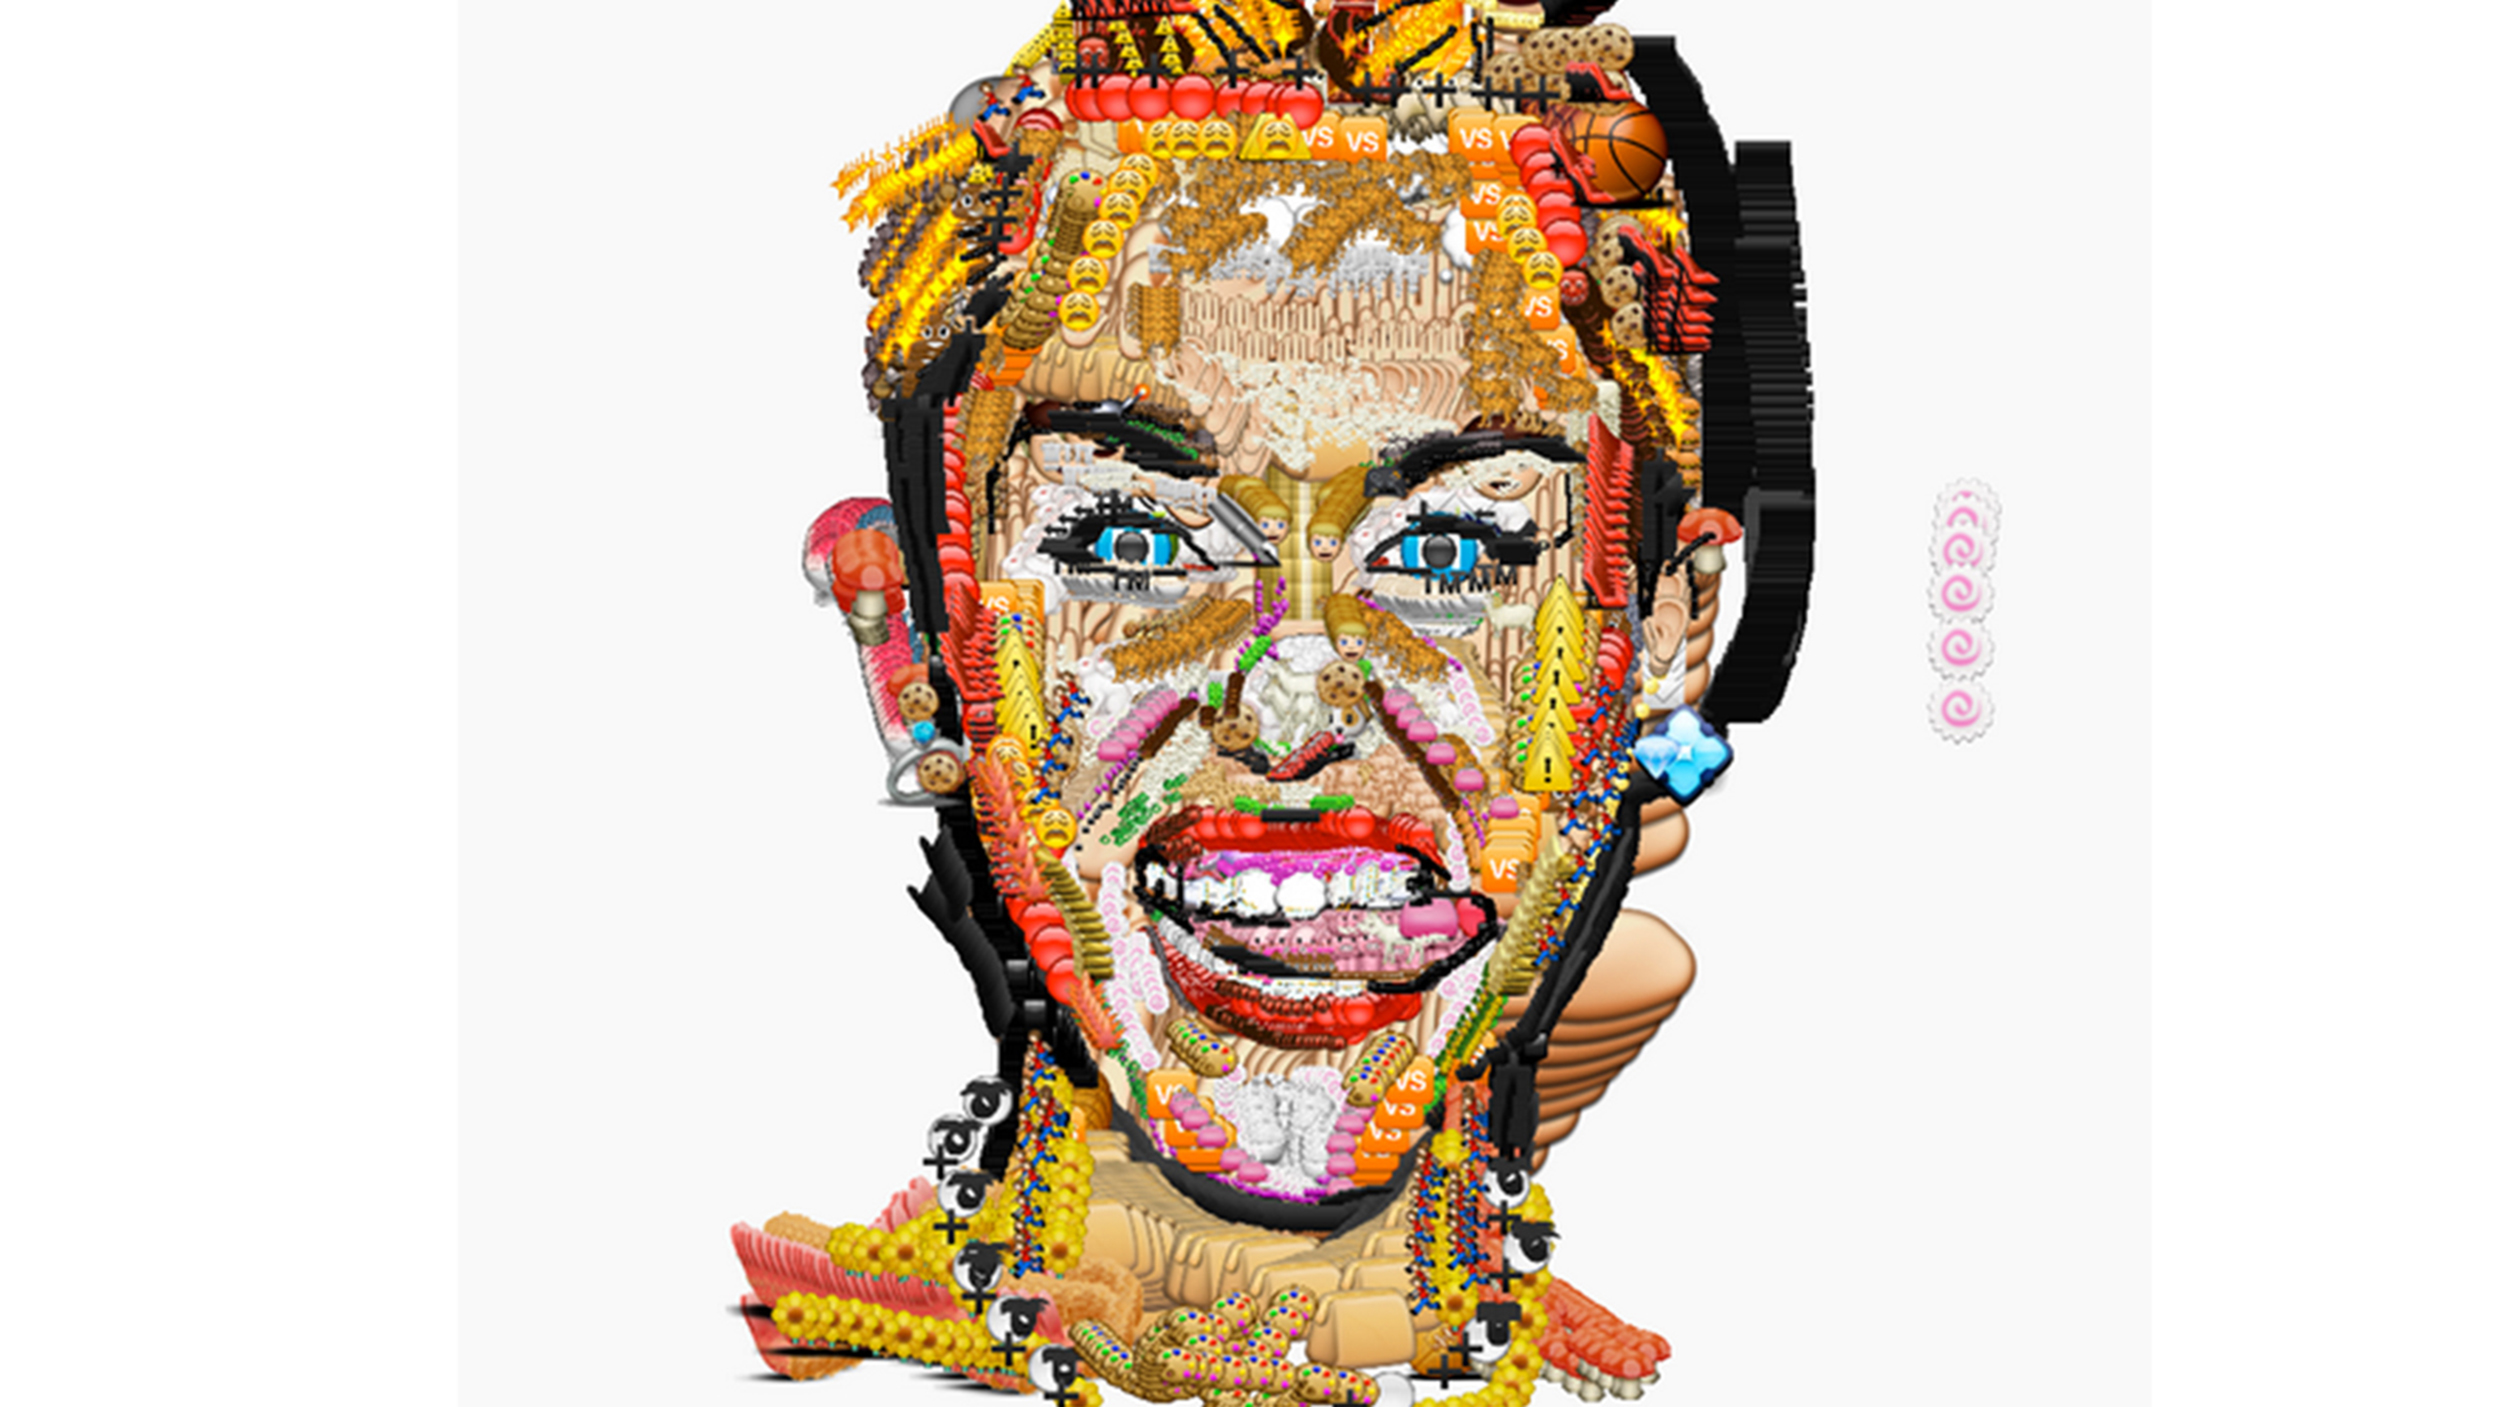 These Beautiful Portraits Of Miley Cyrus And Other Celebs Are Made